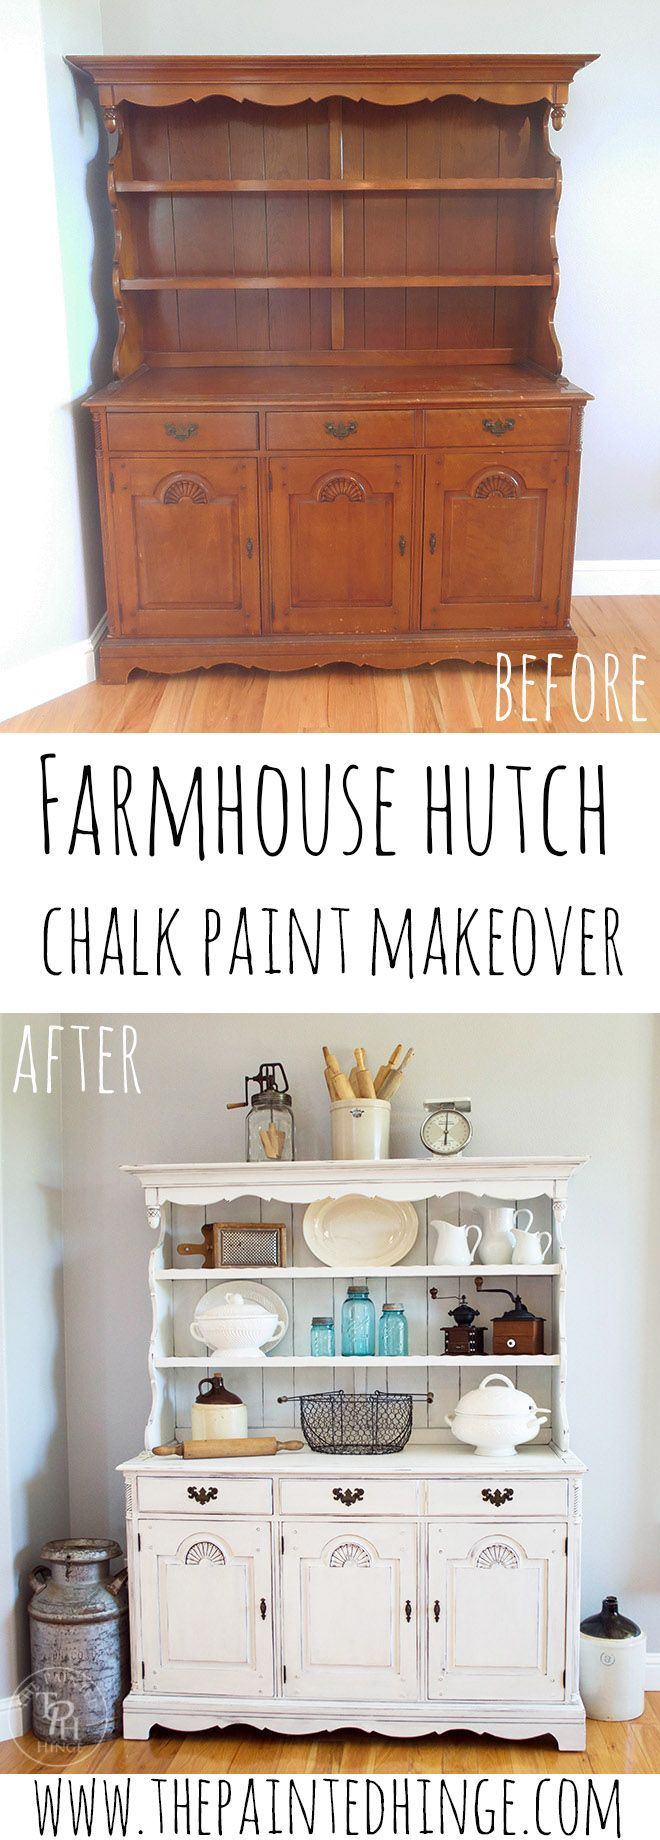 Farmhouse hutch chalk paint makeover using Country Chic Paint!